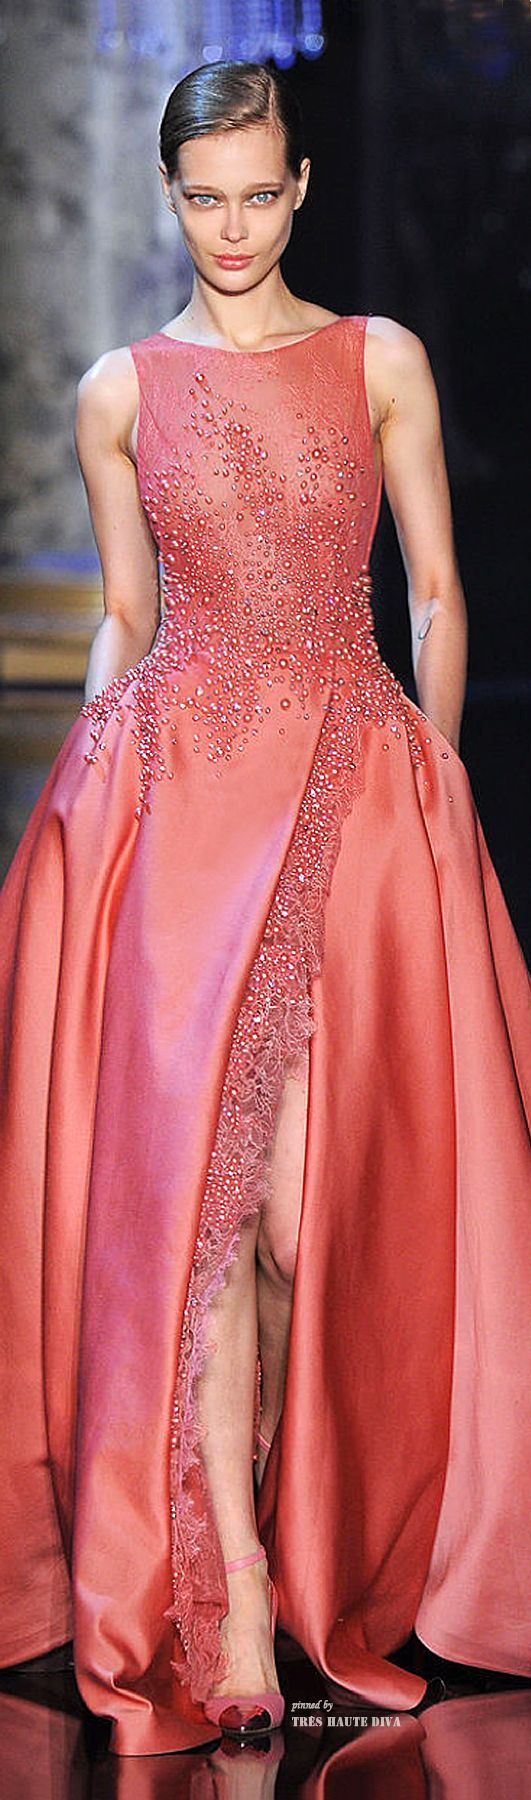 321 best Abiye Modelleri images on Pinterest   Party outfits, Sweet ...